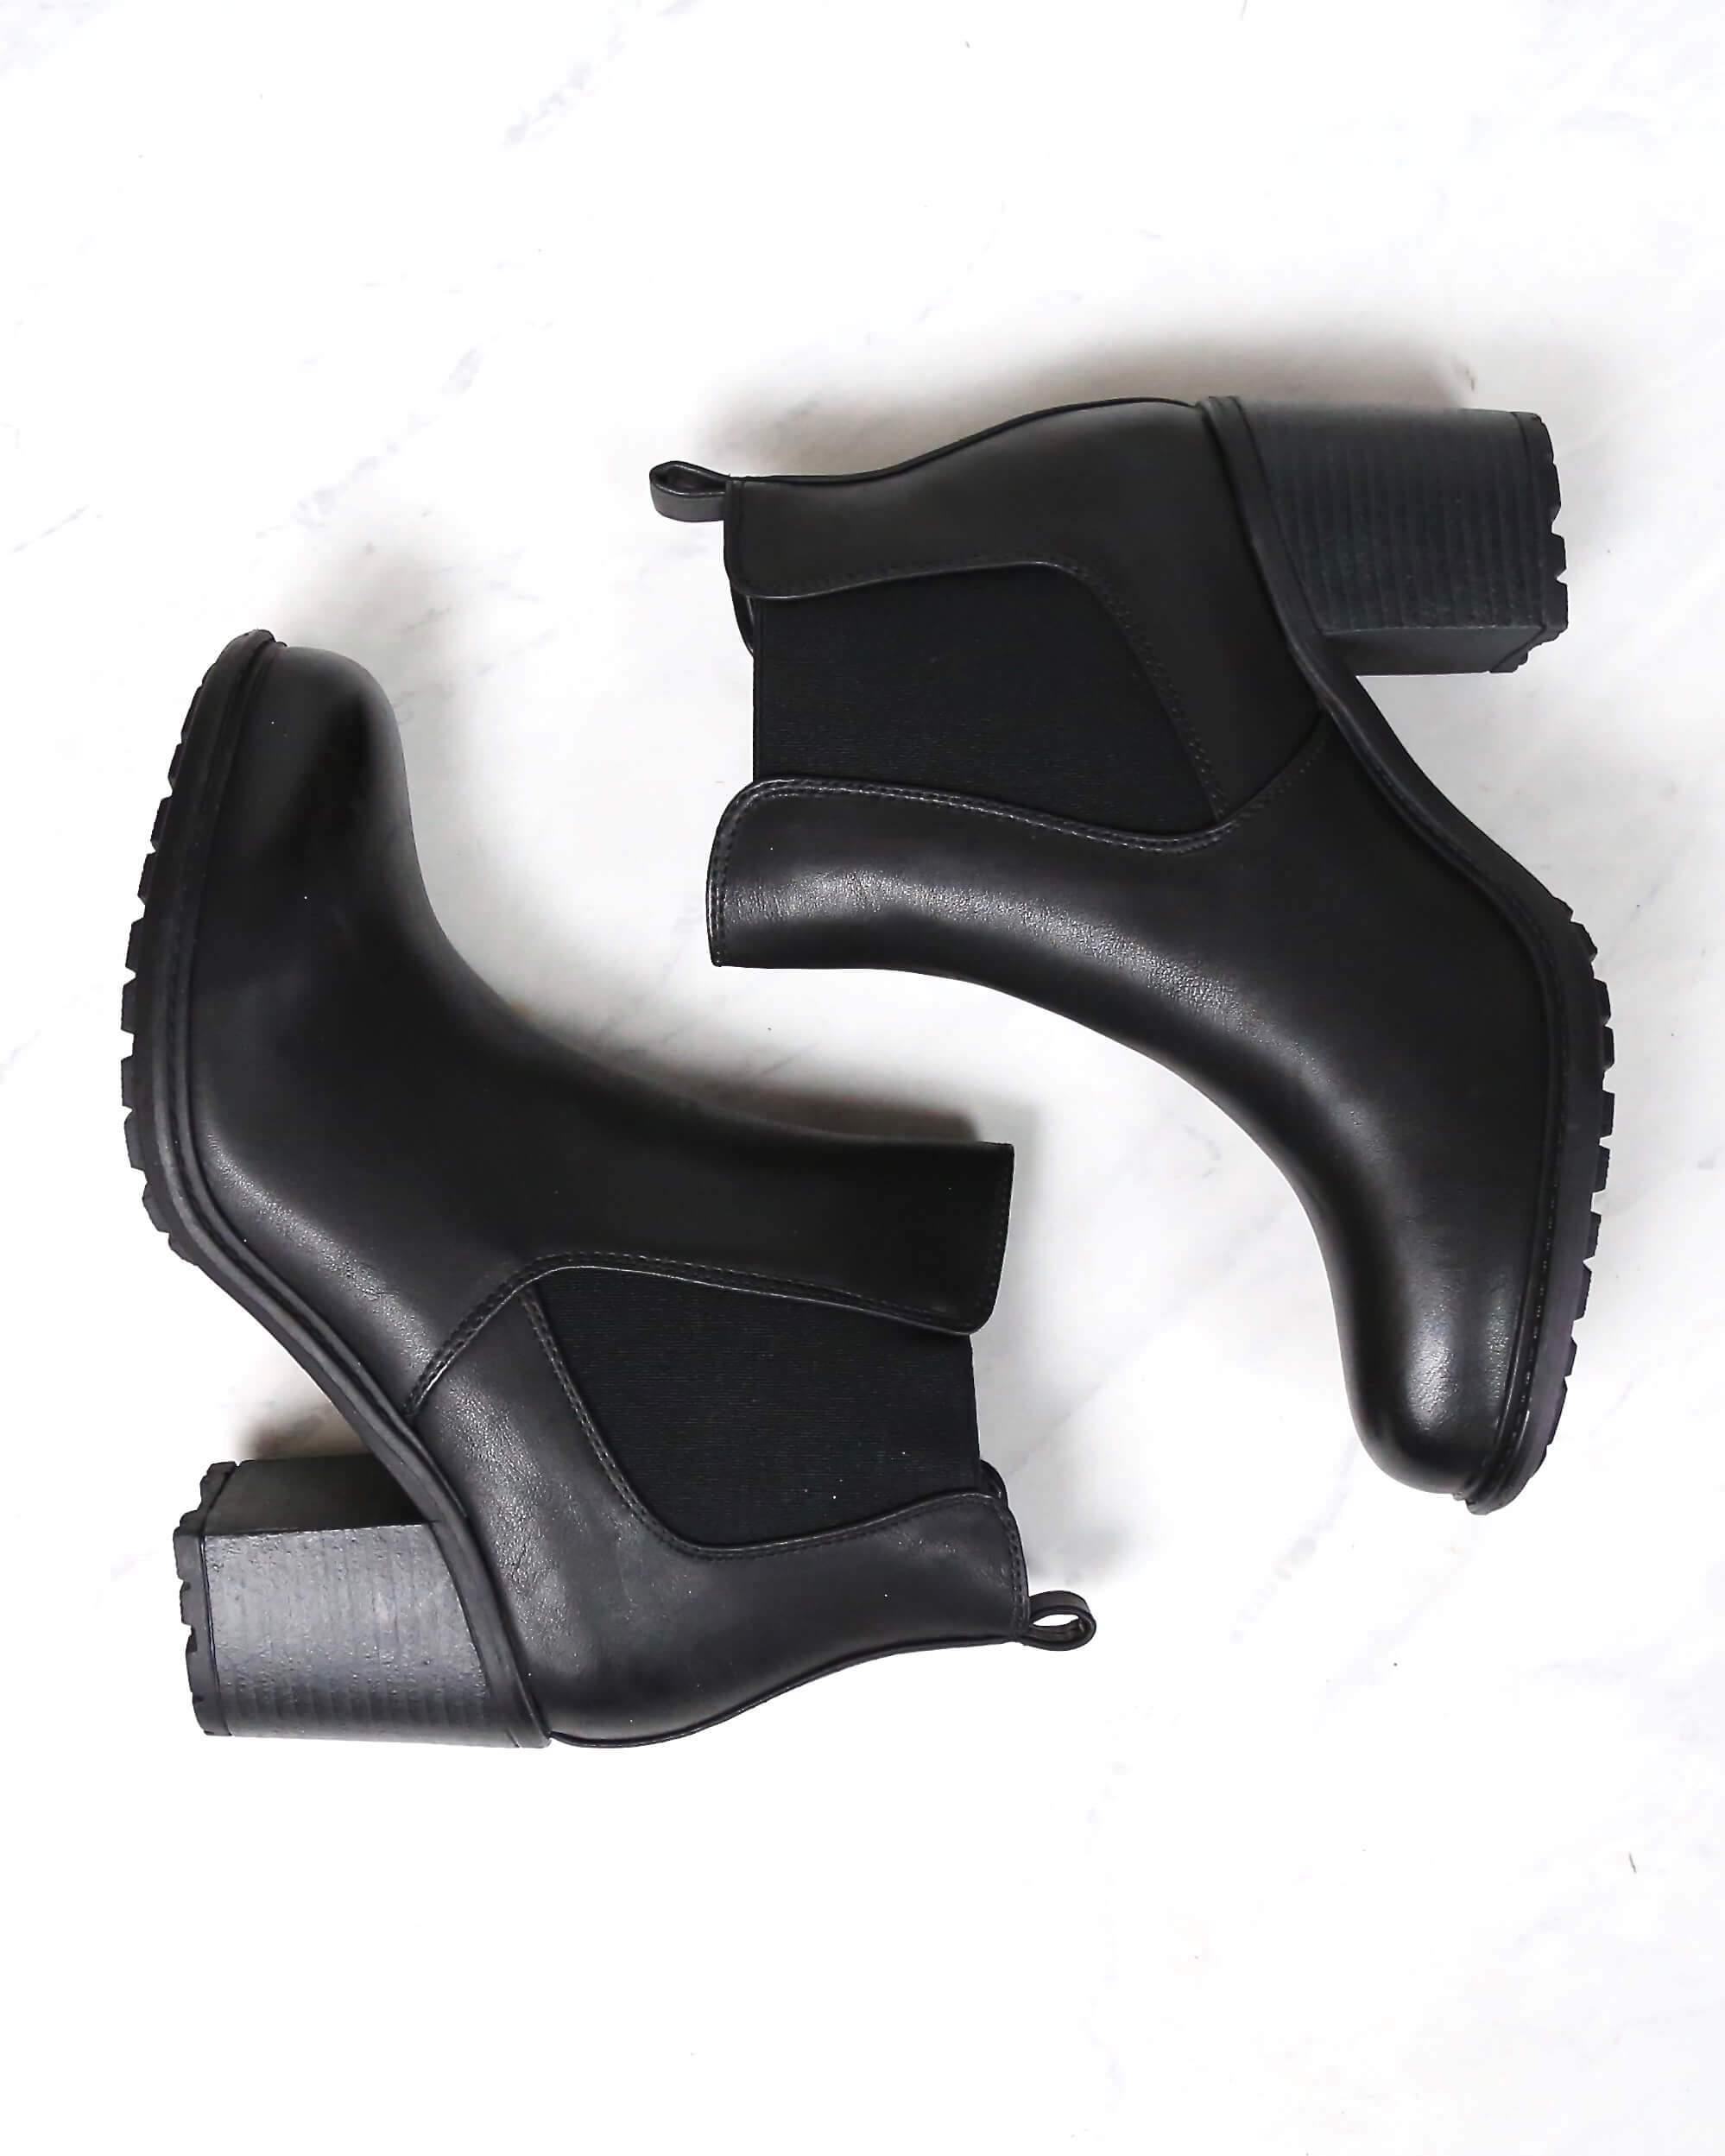 Image of chunky heeled Chelsea ankle boots - black